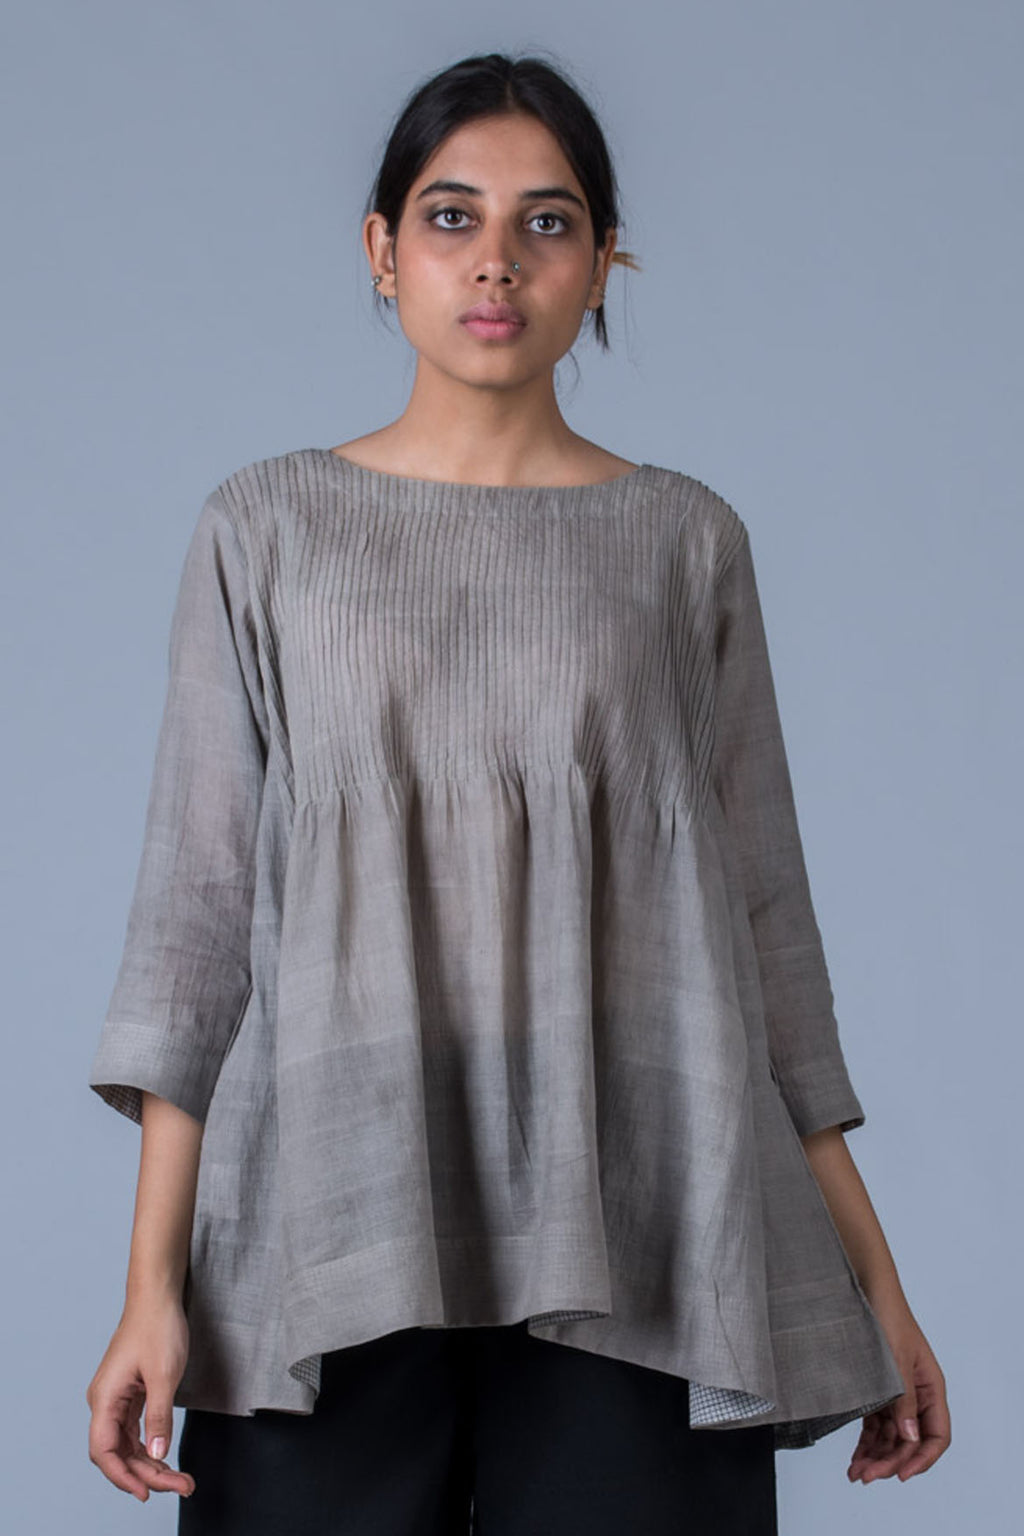 Tulsi dyed Organic Cotton Top - UMILEE - Upasana Design Studio